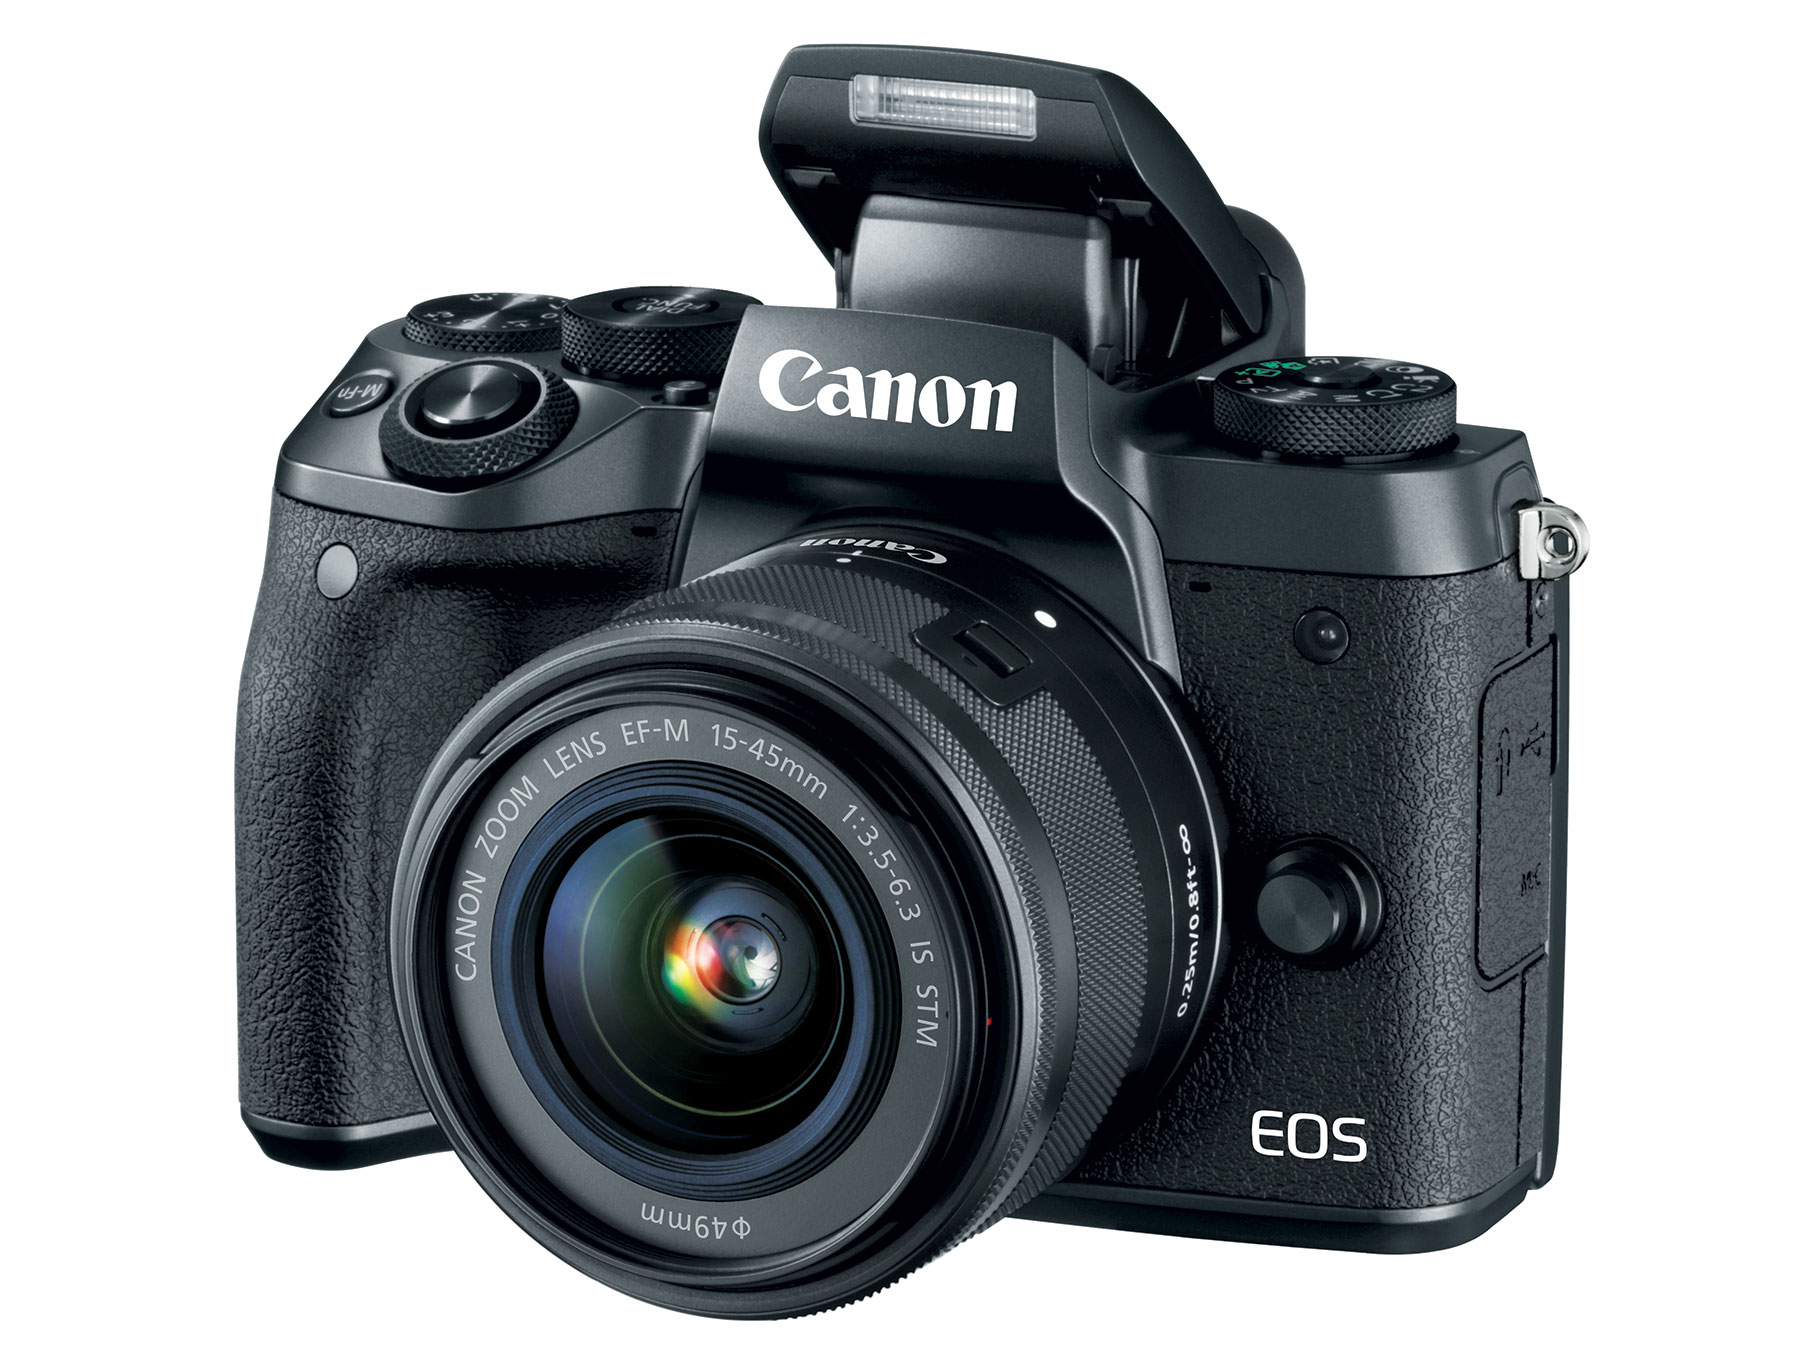 Camera New Canon Dslr Cameras Coming Soon canon eos m6 mirrorless camera to be announced soon daily soon